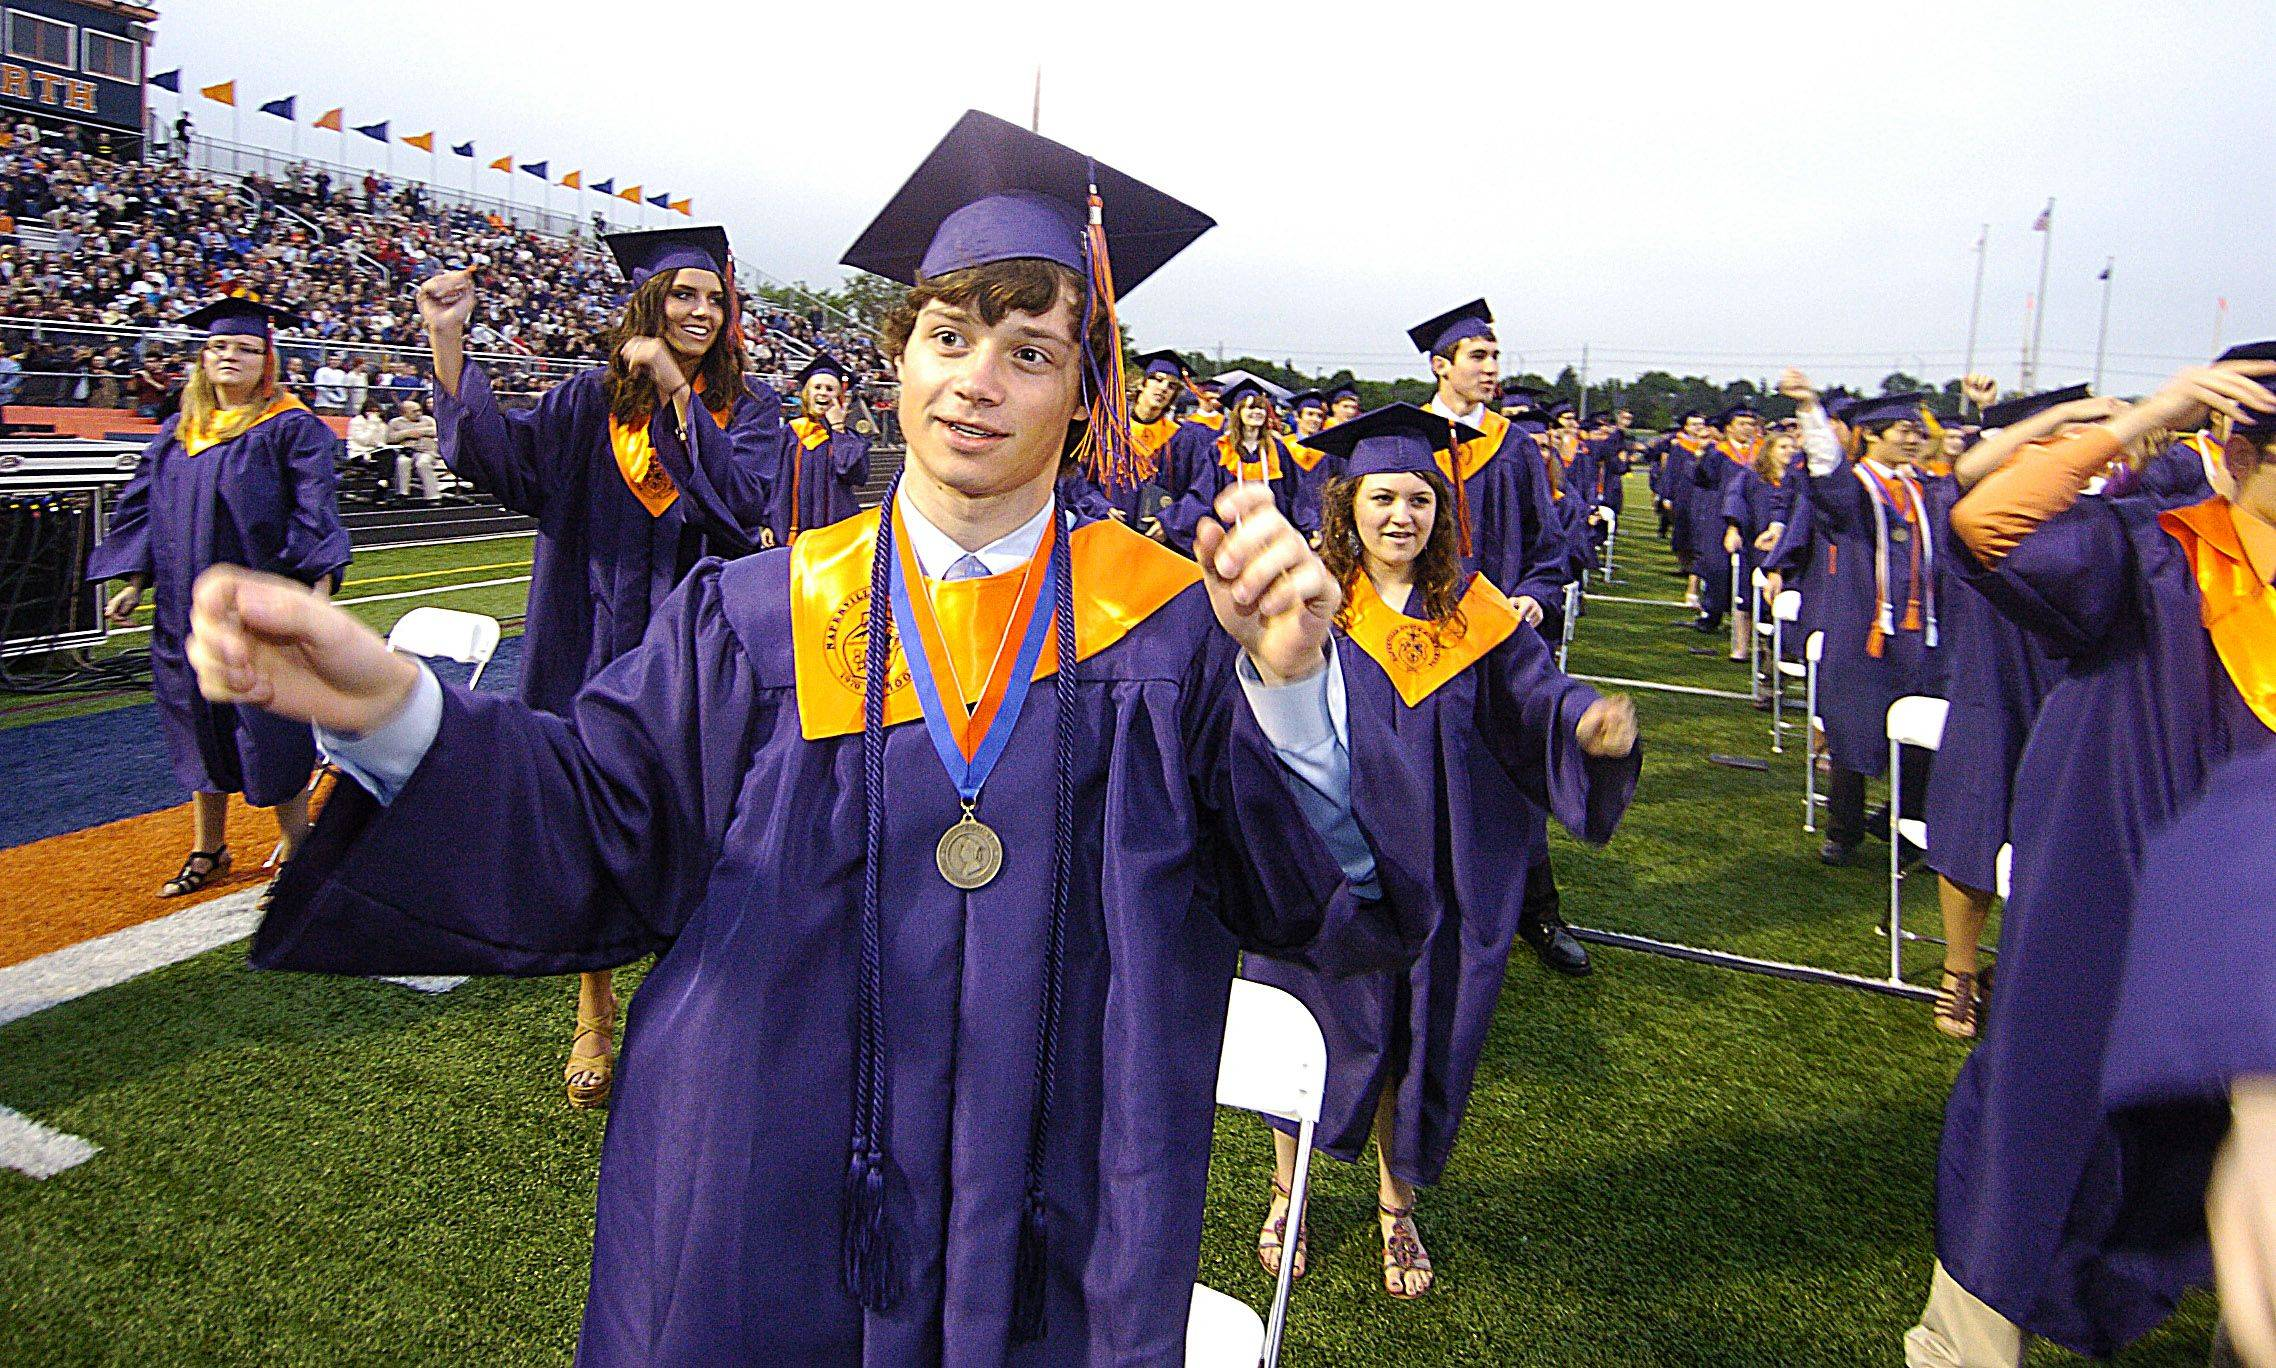 The graduating class of 2011 performs a flash mob dance to close out the Naperville North High School graduation ceremony.